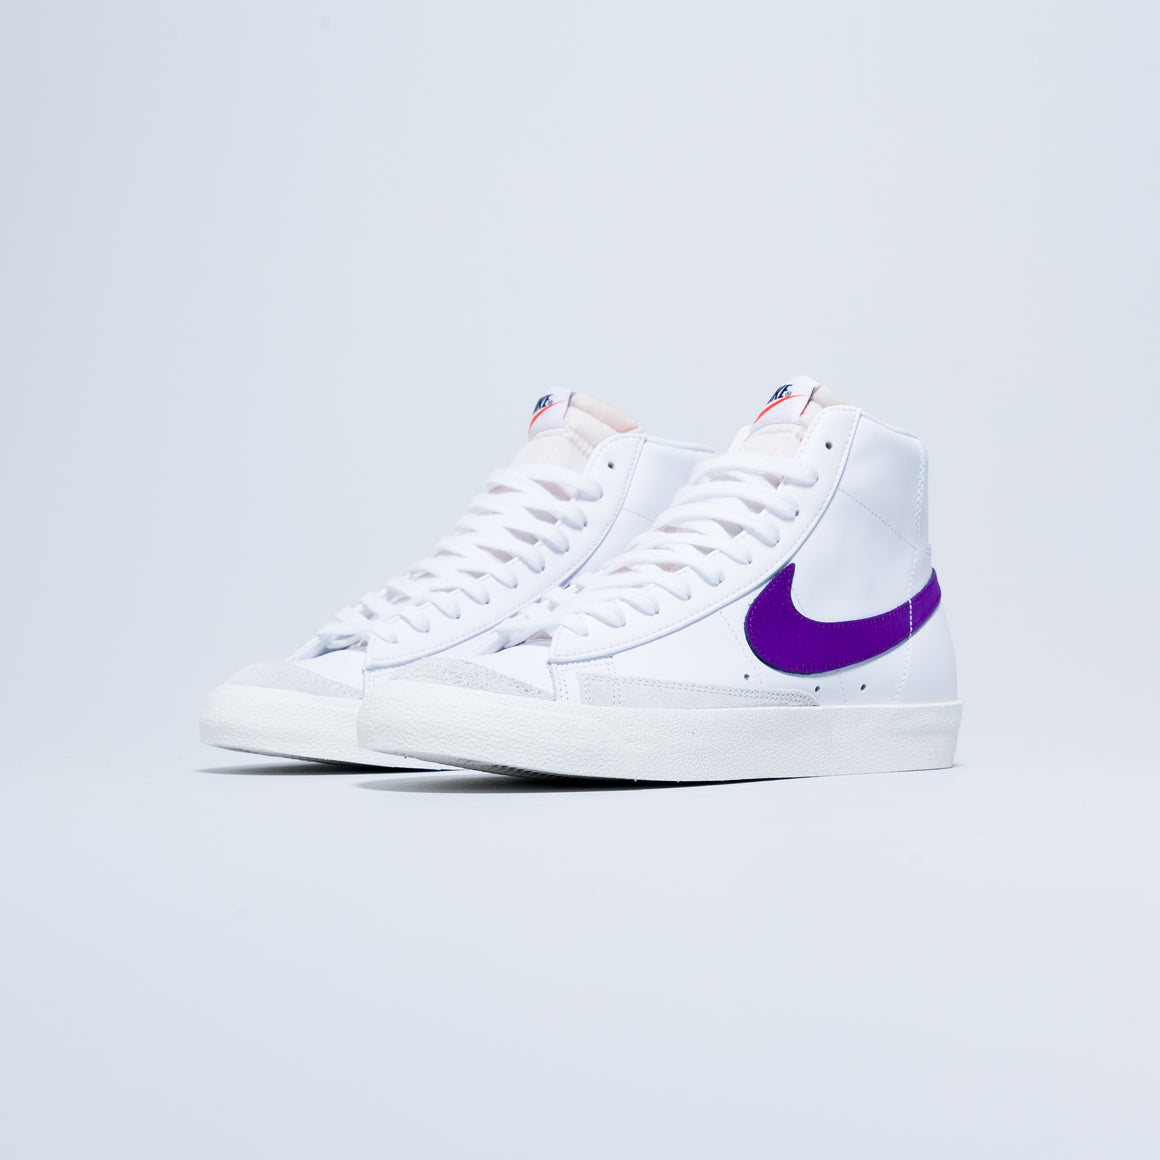 Nike - Blazer Mid '77 VNTG - White/Voltage Purple-Sail - Up There